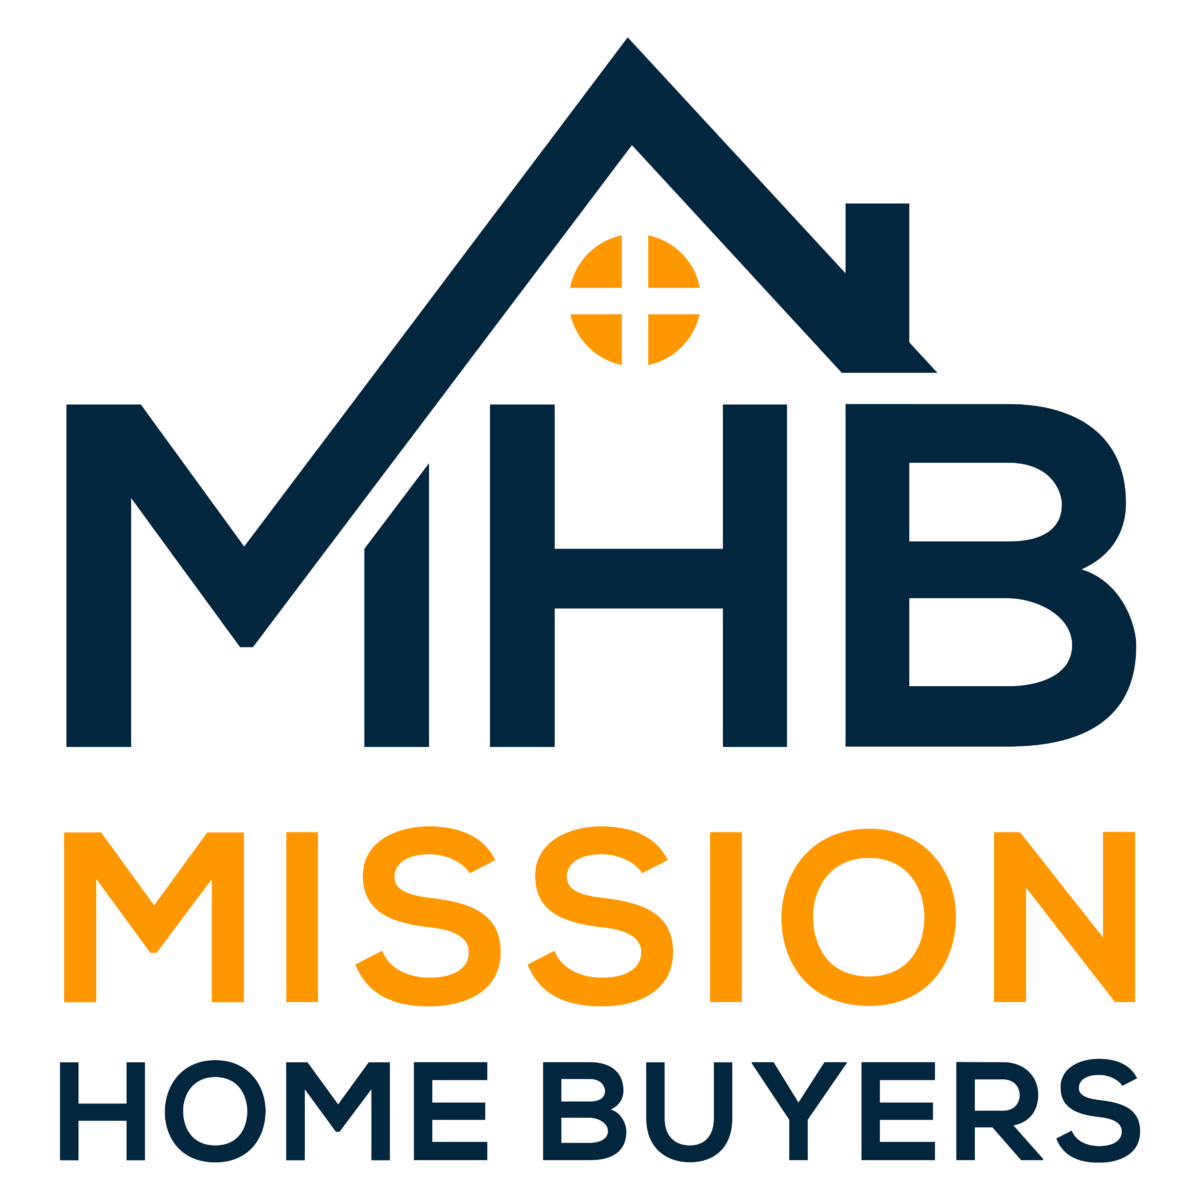 Mission Hub Home Buyers